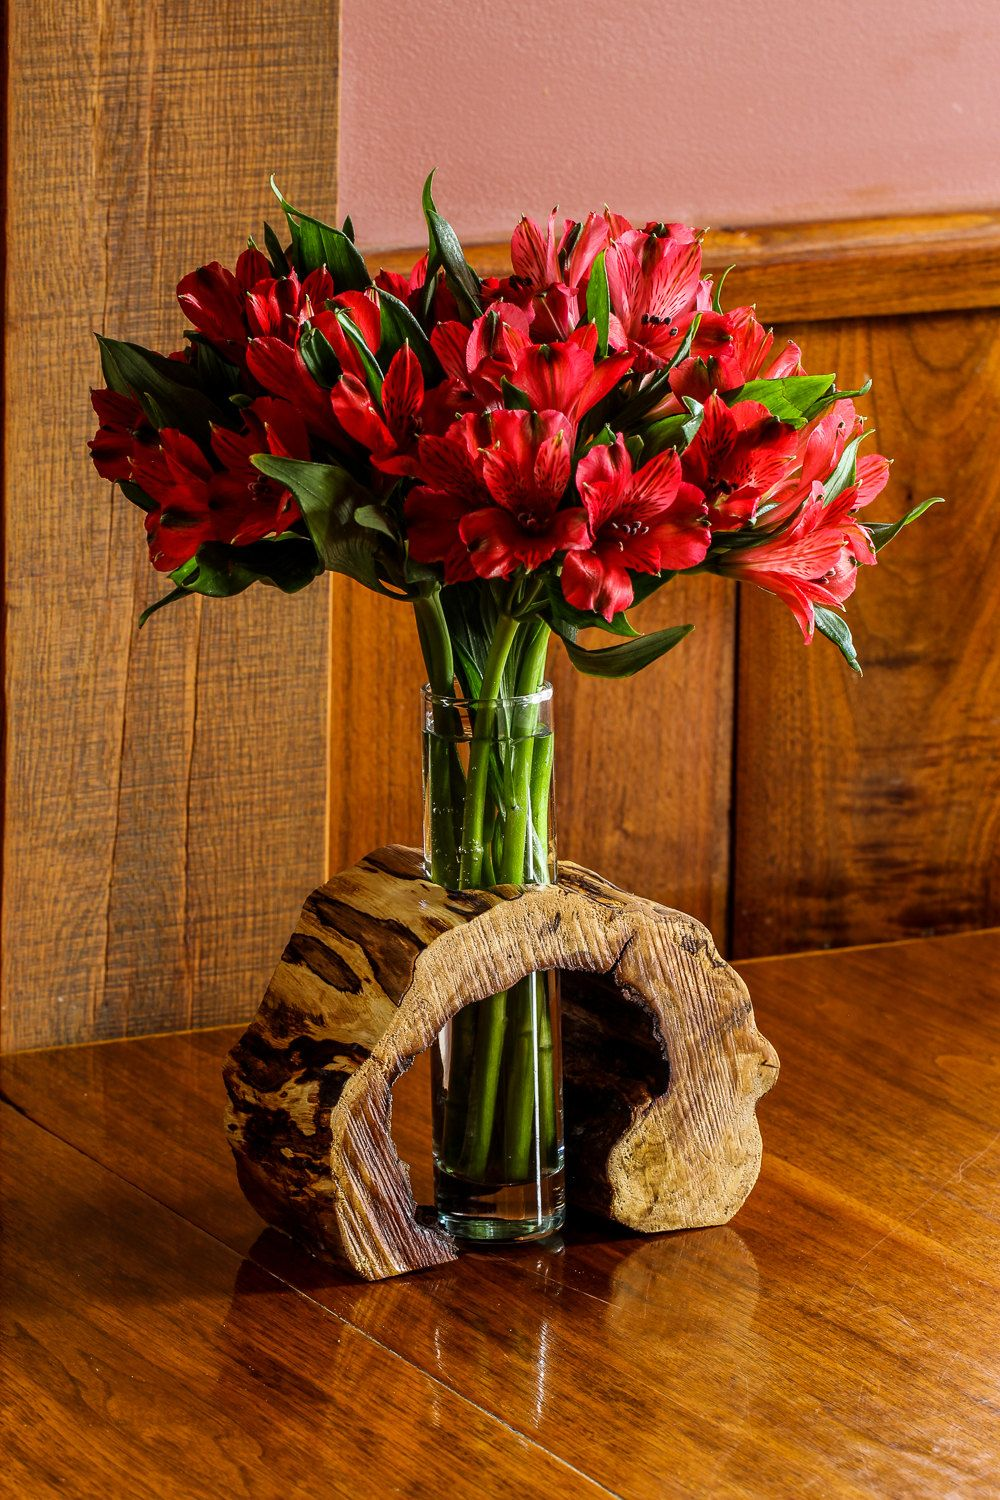 Wood Log Ideas for Your Home and Garden